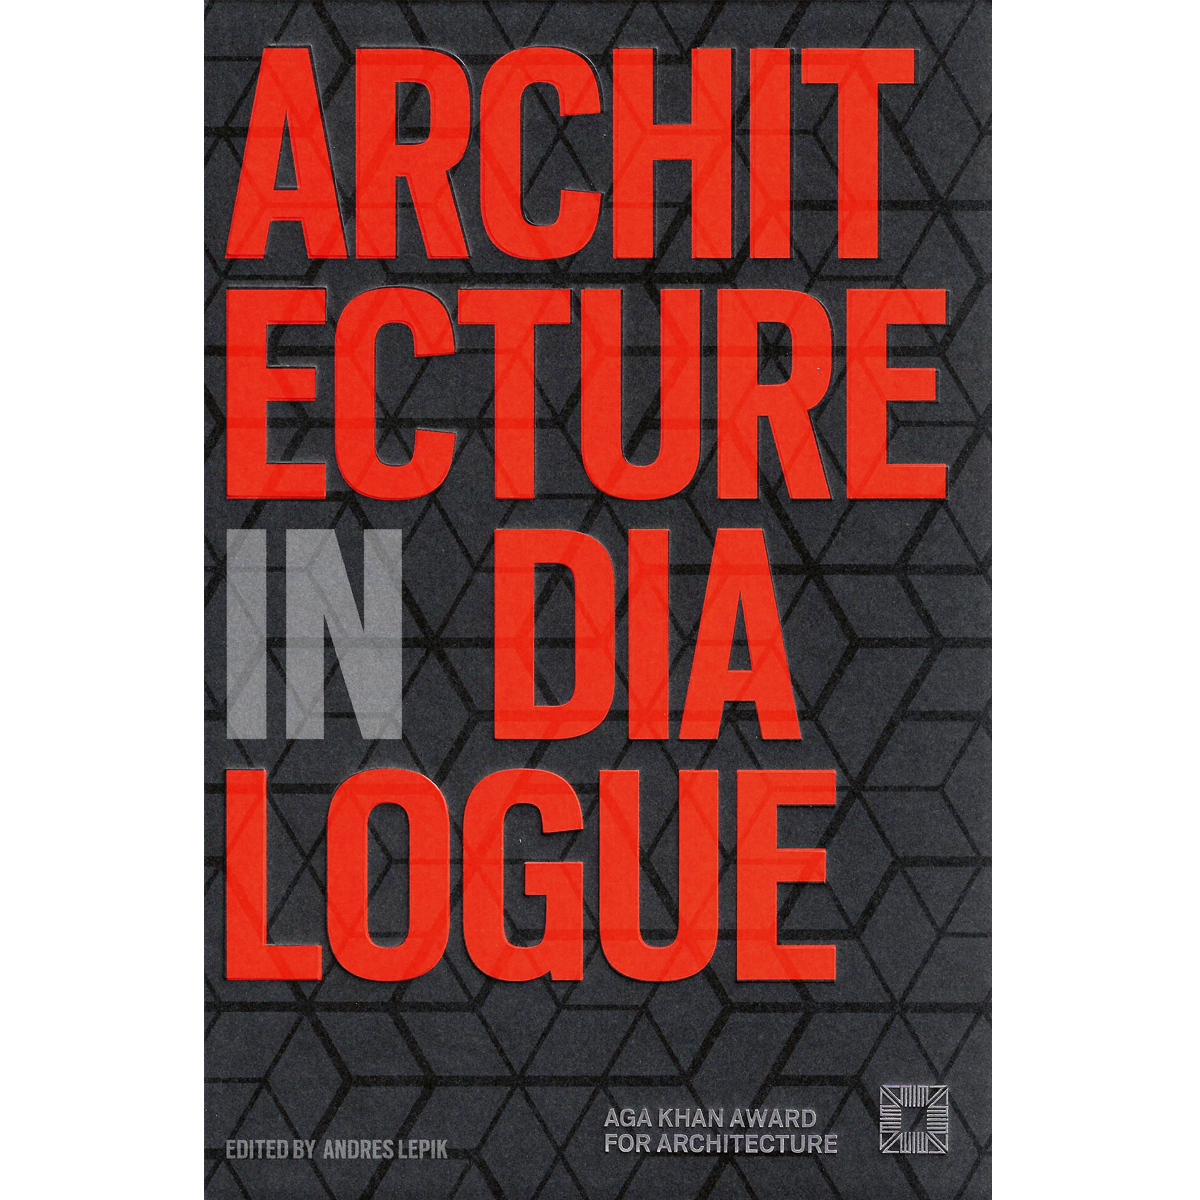 Architecture in Dialogue